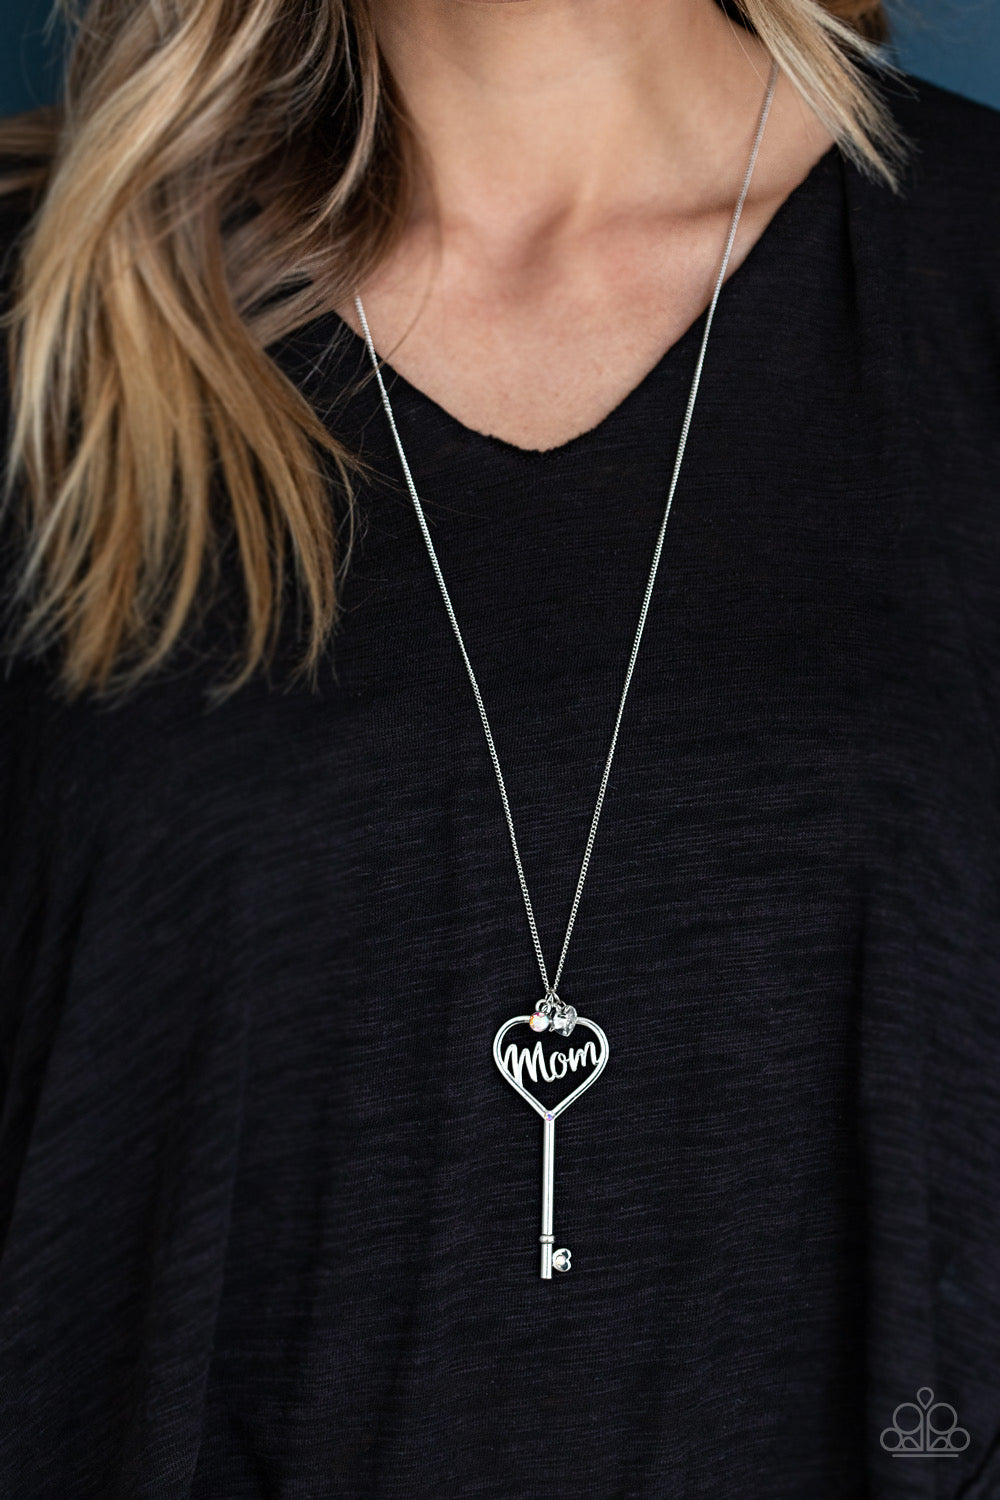 The Key To Mom Heart - Multi Necklace